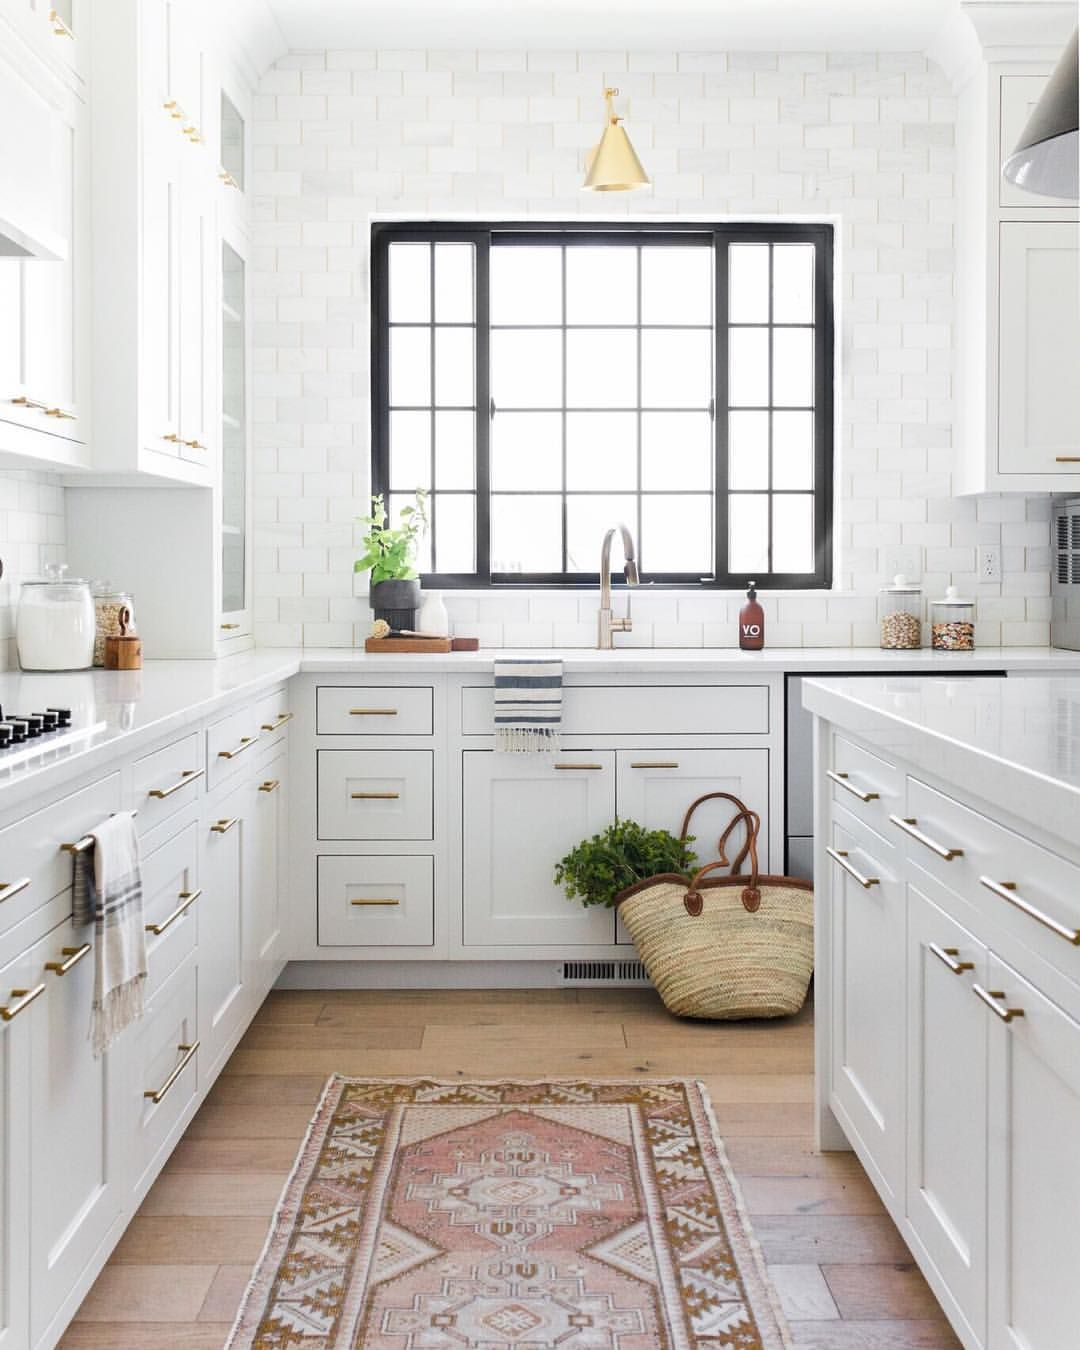 Pin By Mailee Yoder On Kitchens In 2019 | Kitchen Cabinets ...